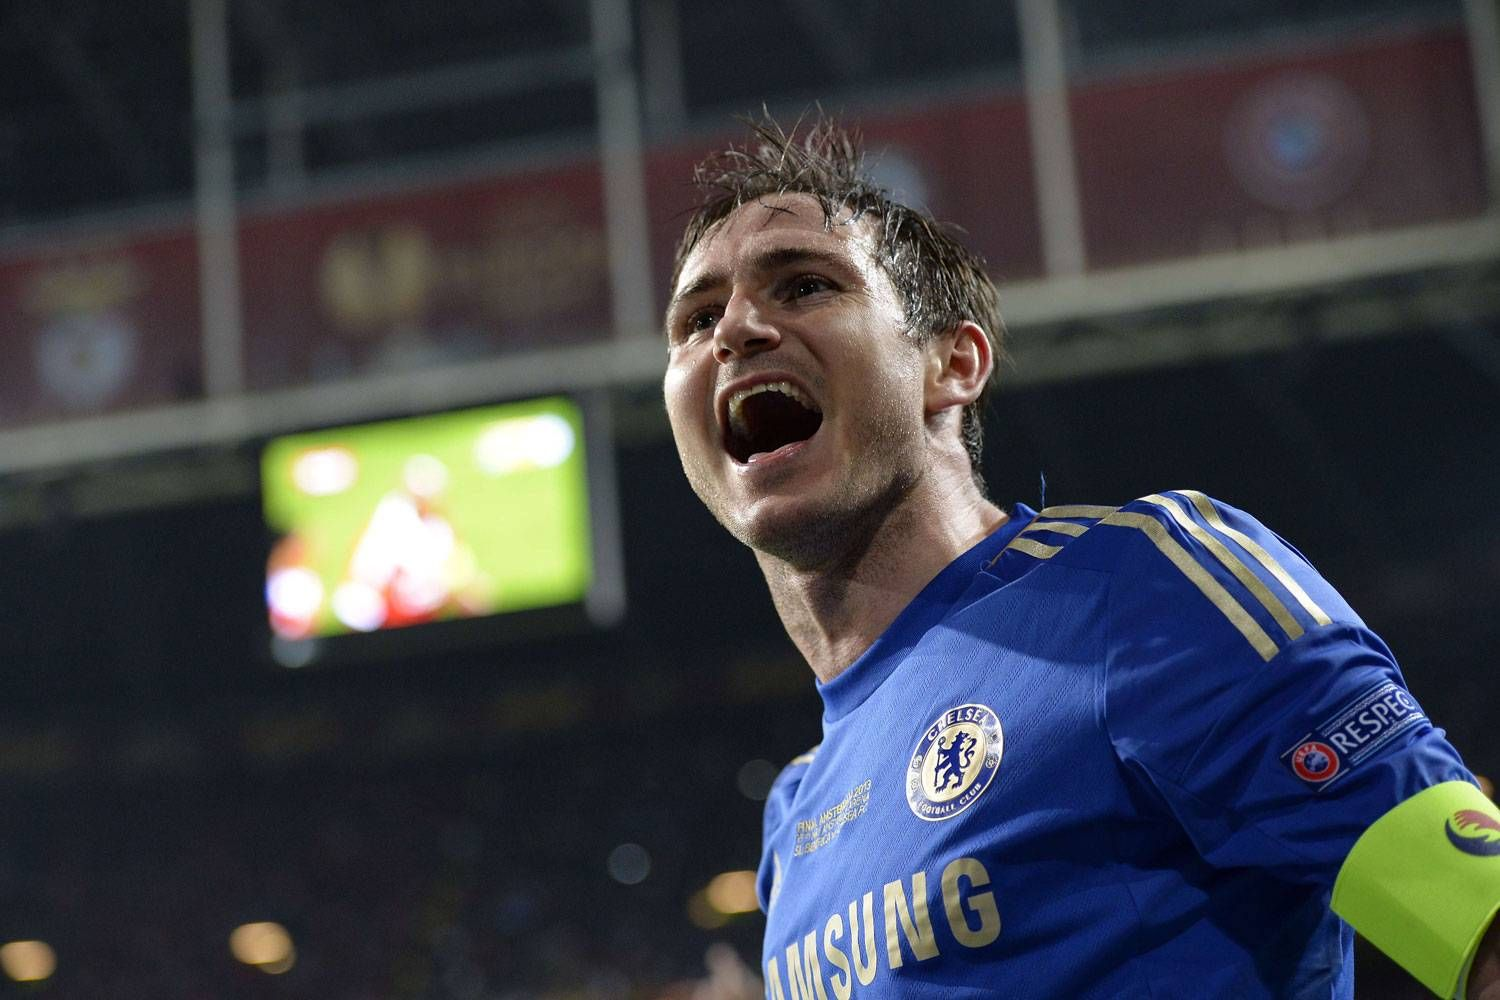 Frank lampard hd wallpapers 1080p httpwallpapersoccer frank lampard hd wallpapers 1080p httpwallpapersoccer voltagebd Images